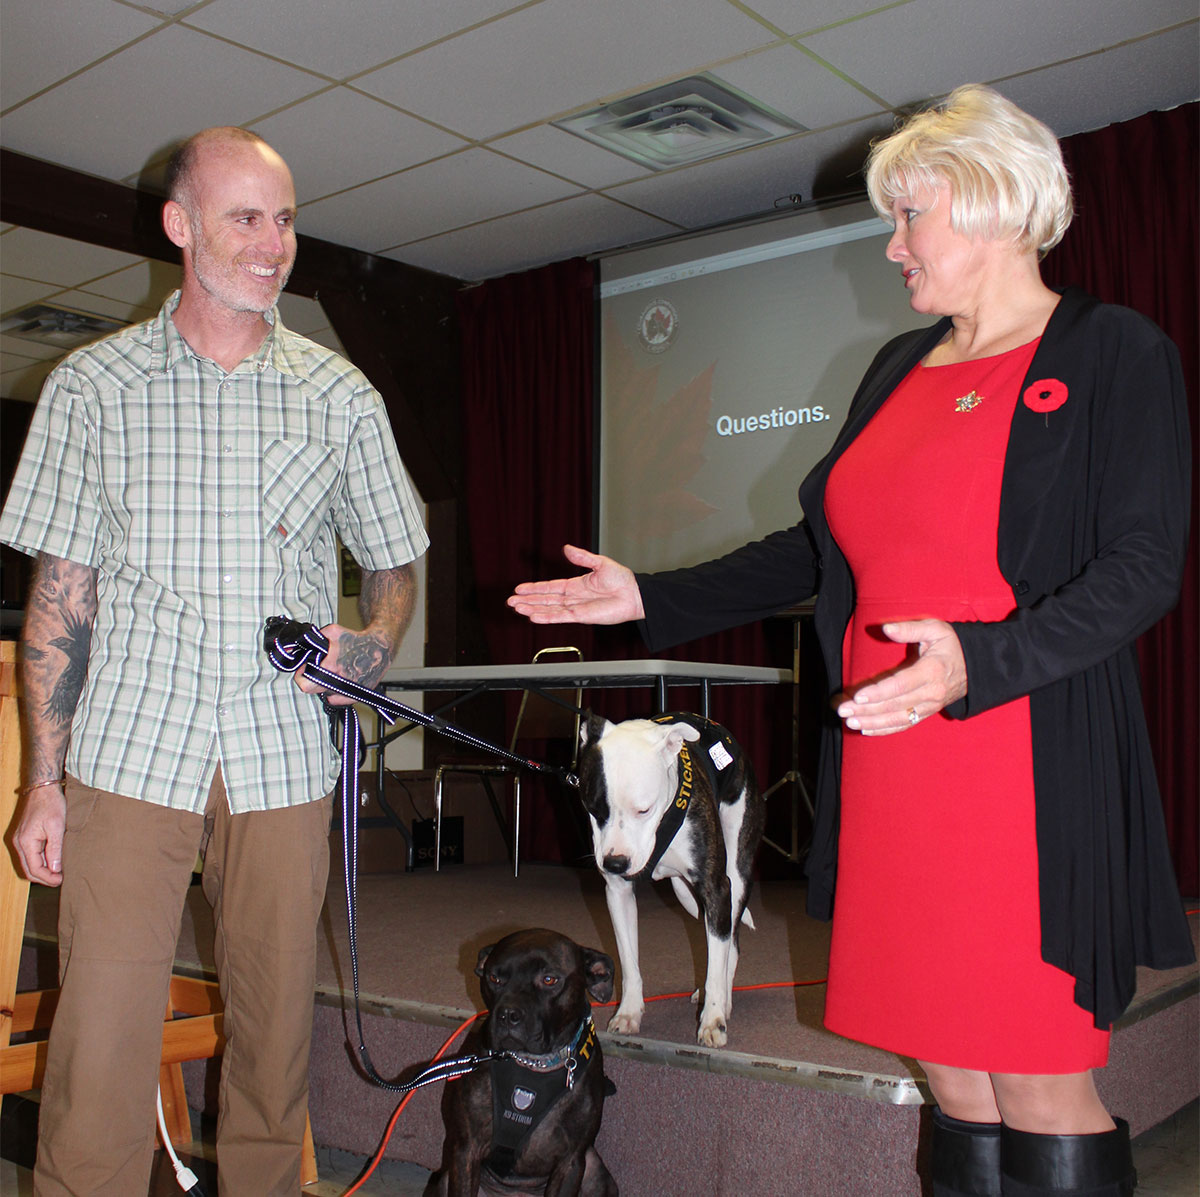 Cheryl Gallant Hosts Successful Soldiers/Veterans Information Therapy Session Focus on alternative therapies for PTSD